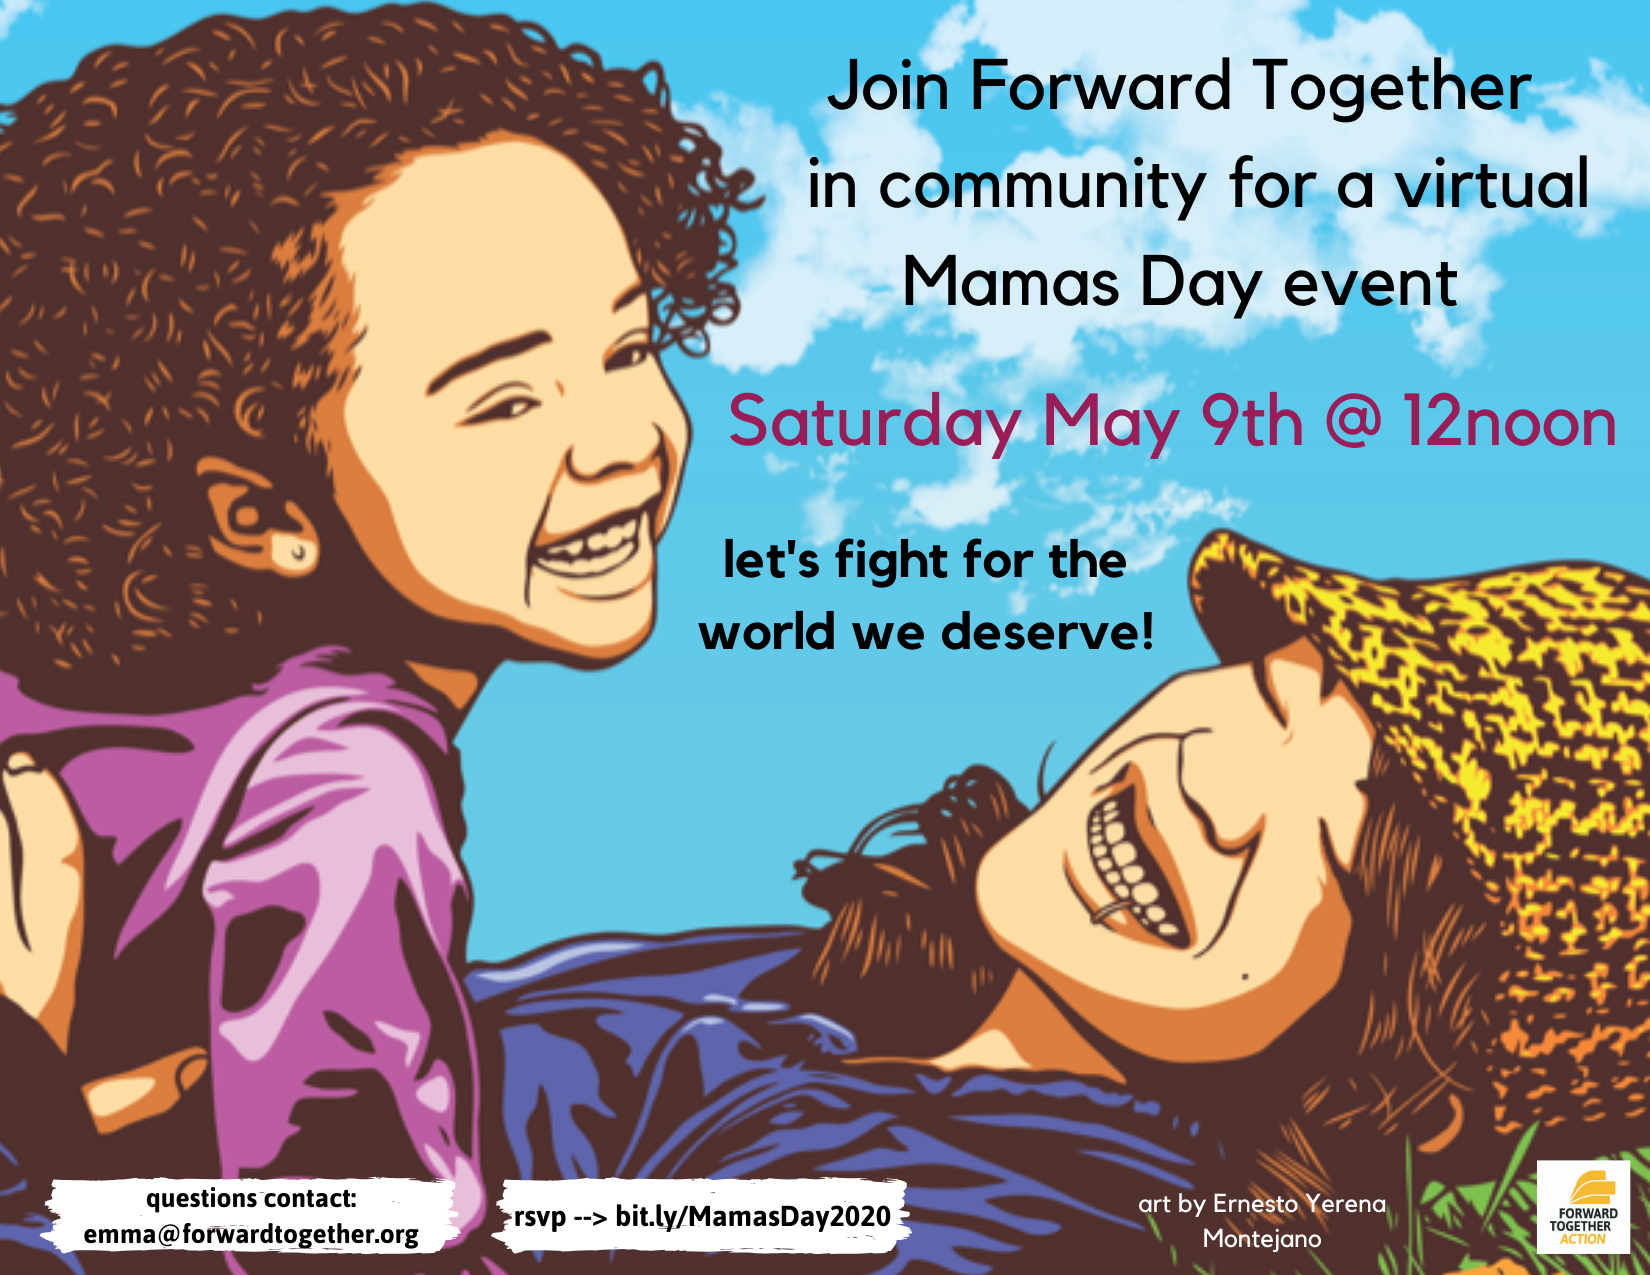 Image Description of header photo: A young child laying with their mom outside under a clear blue sky. Words across the sky say: Join Forward Together in community for a virtual Mamas Day event, Saturday May 9th at twelve noon. Let's fight for the world we deserve!